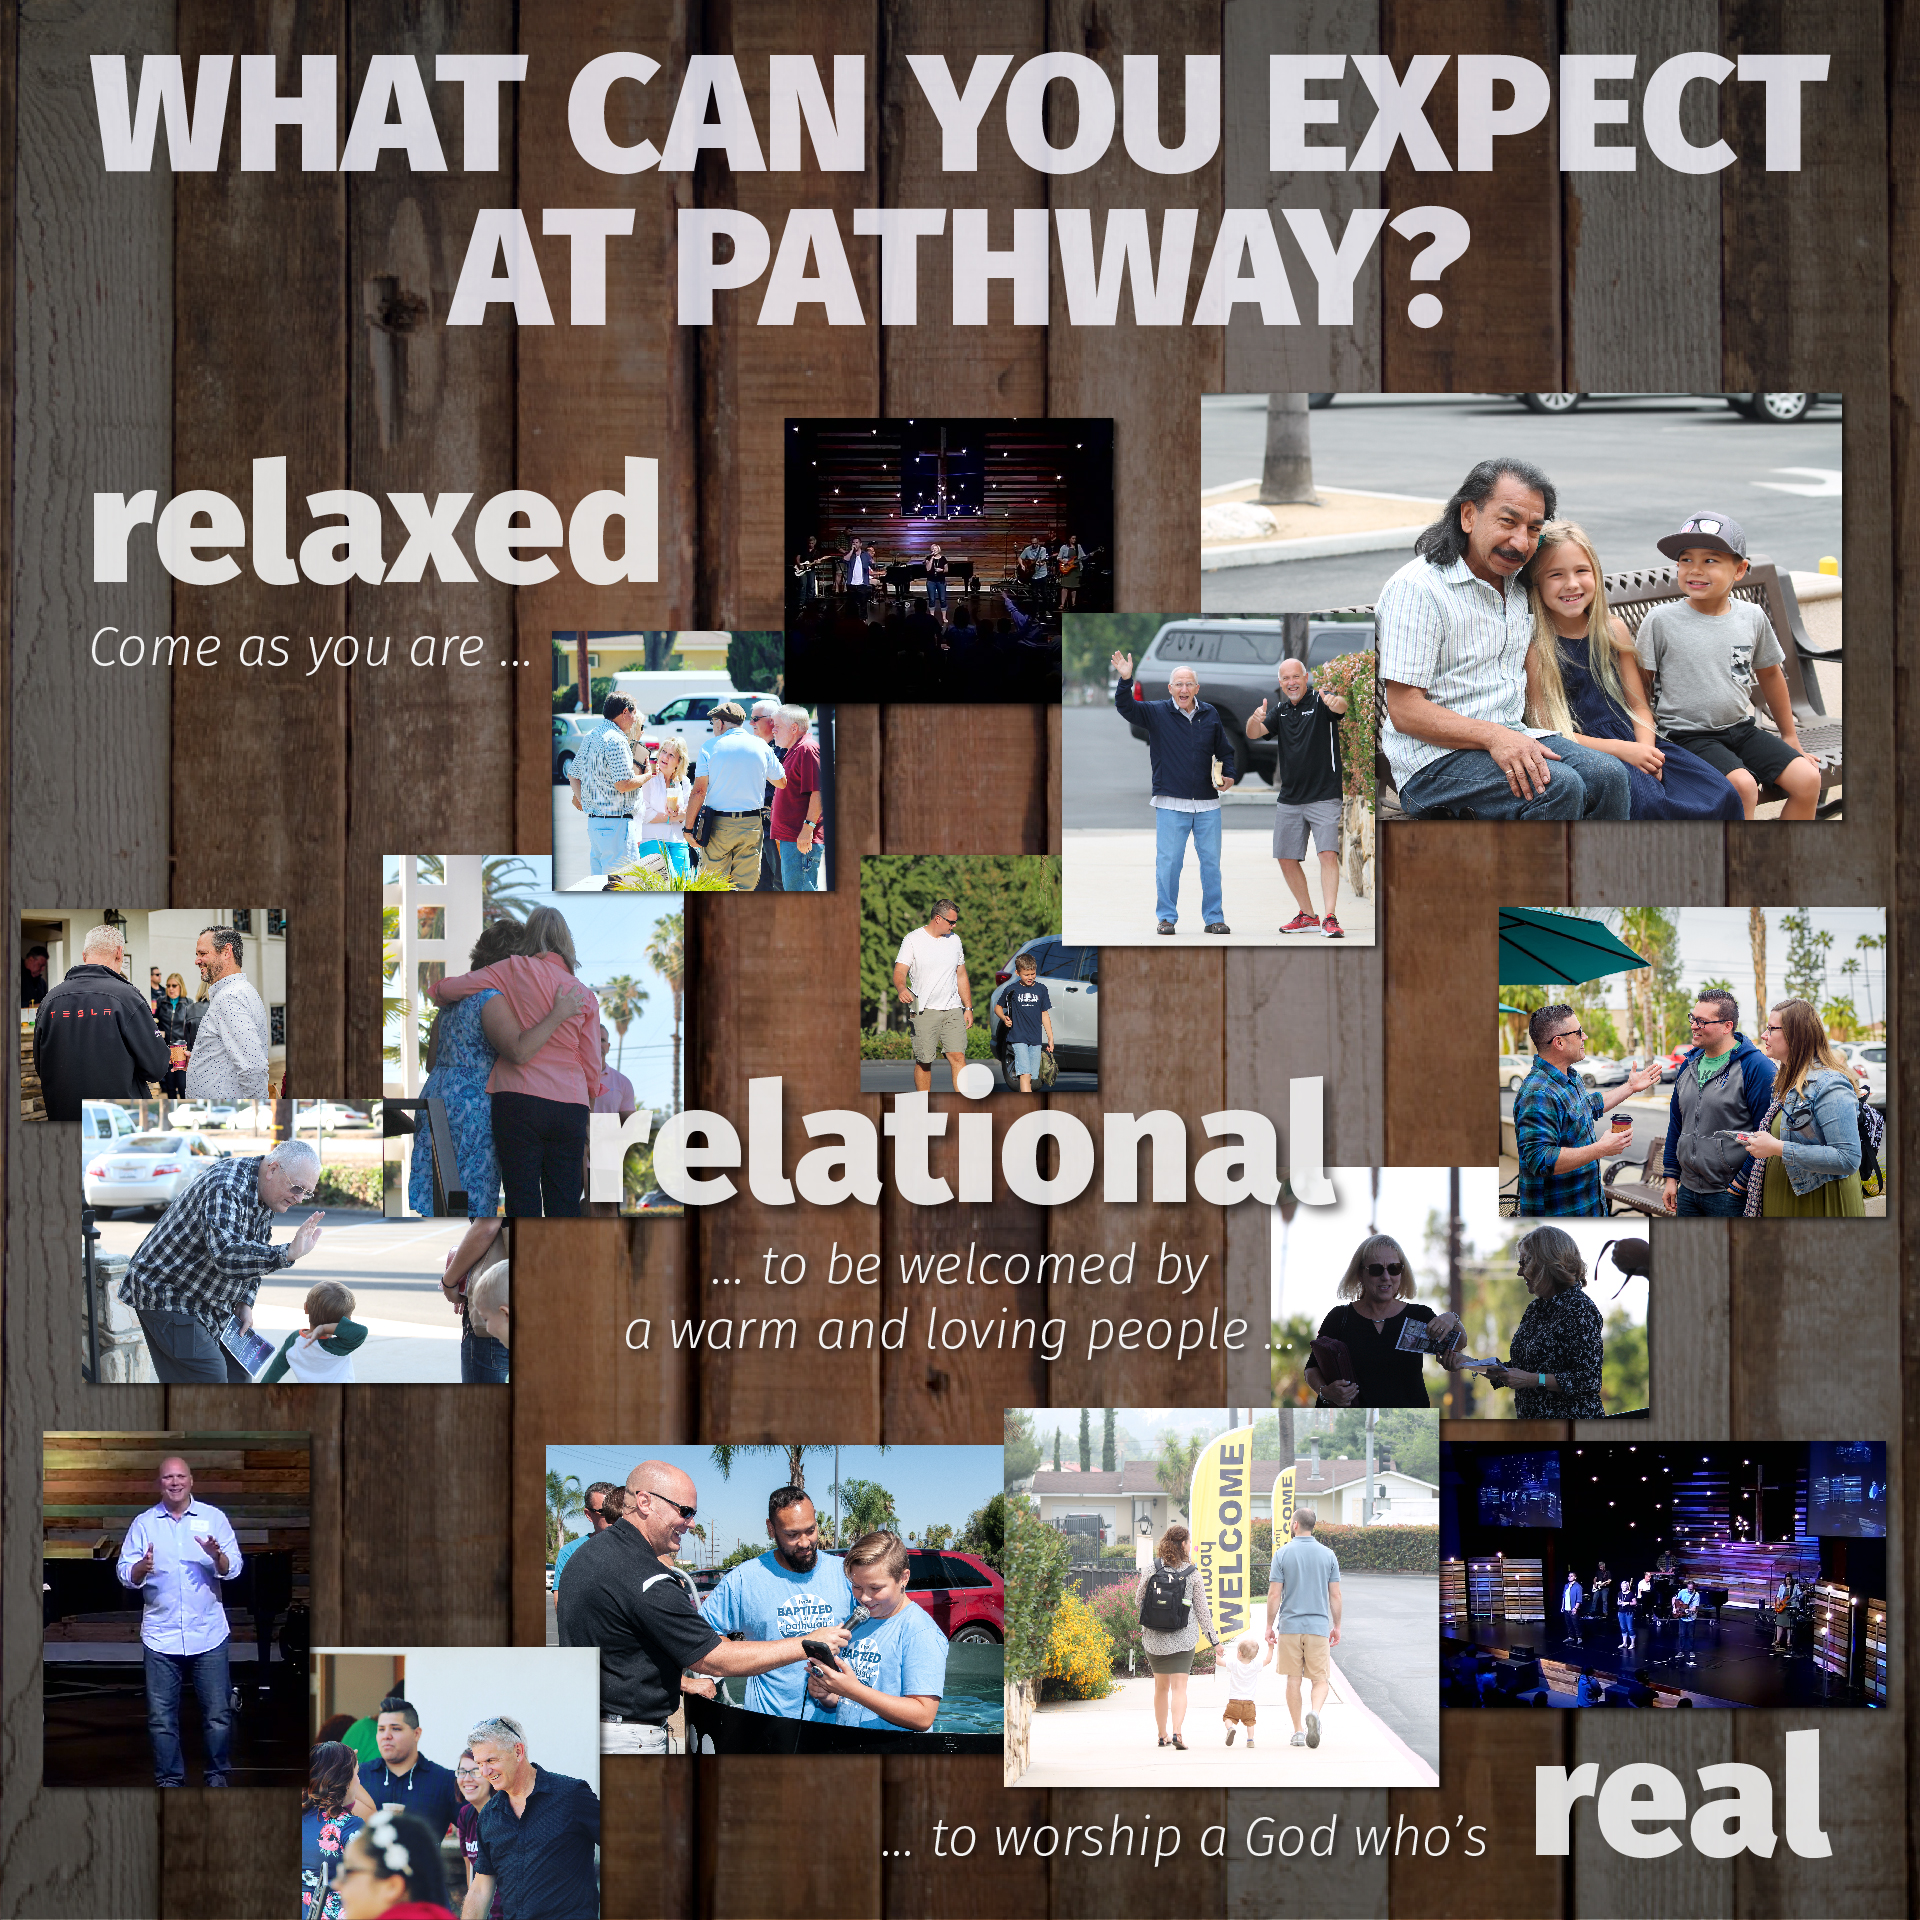 What to expect at Pathway? Relaxed. Relational. Real. Come as you are to be welcomed by a warm and loving people to worship a God who's real.